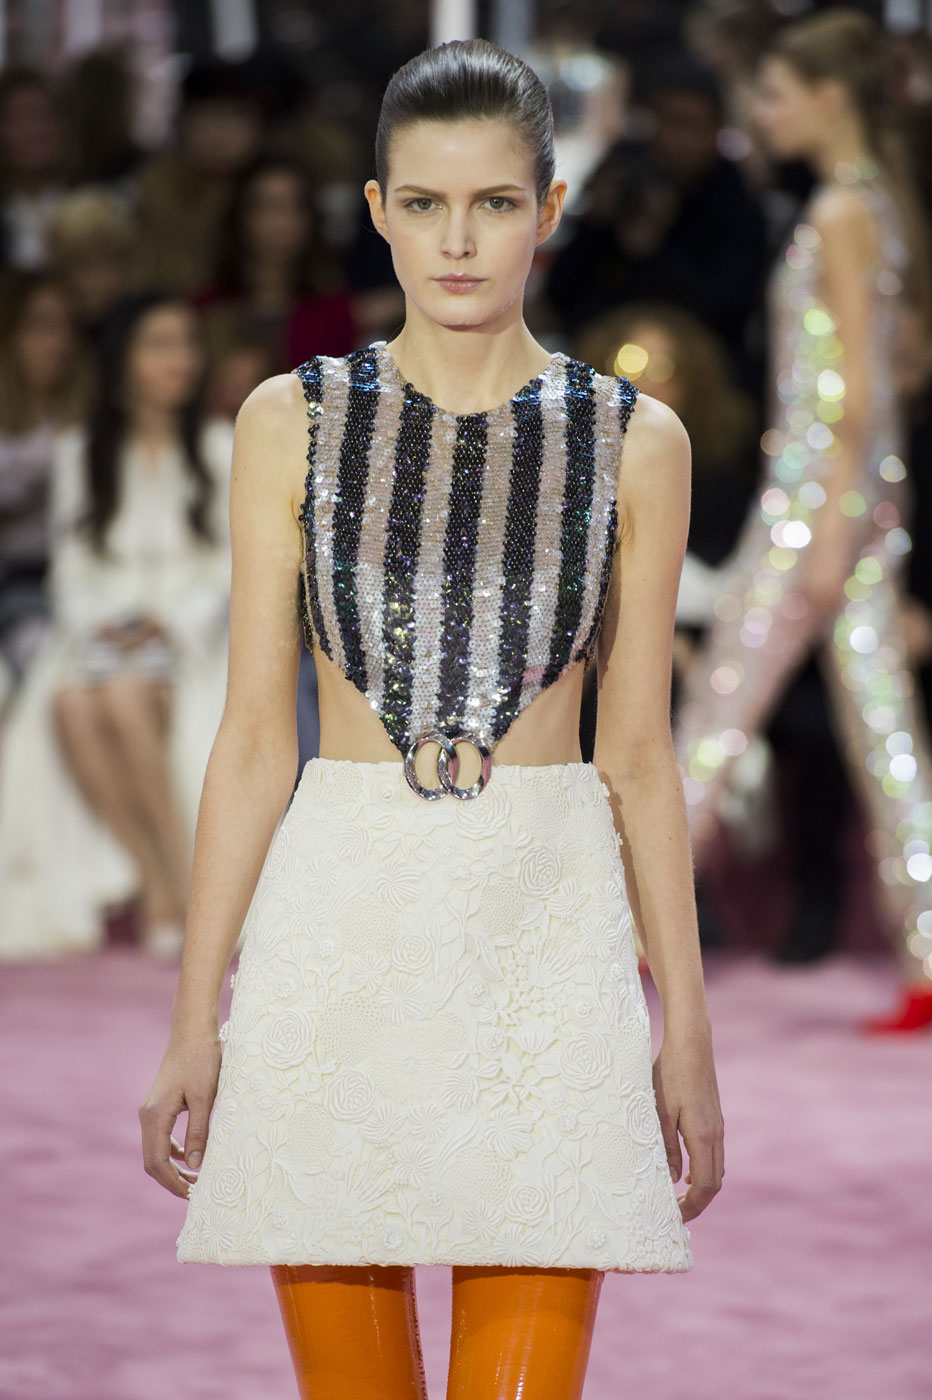 Christian-Dior-fashion-runway-show-haute-couture-paris-spring-summer-2015-the-impression-064